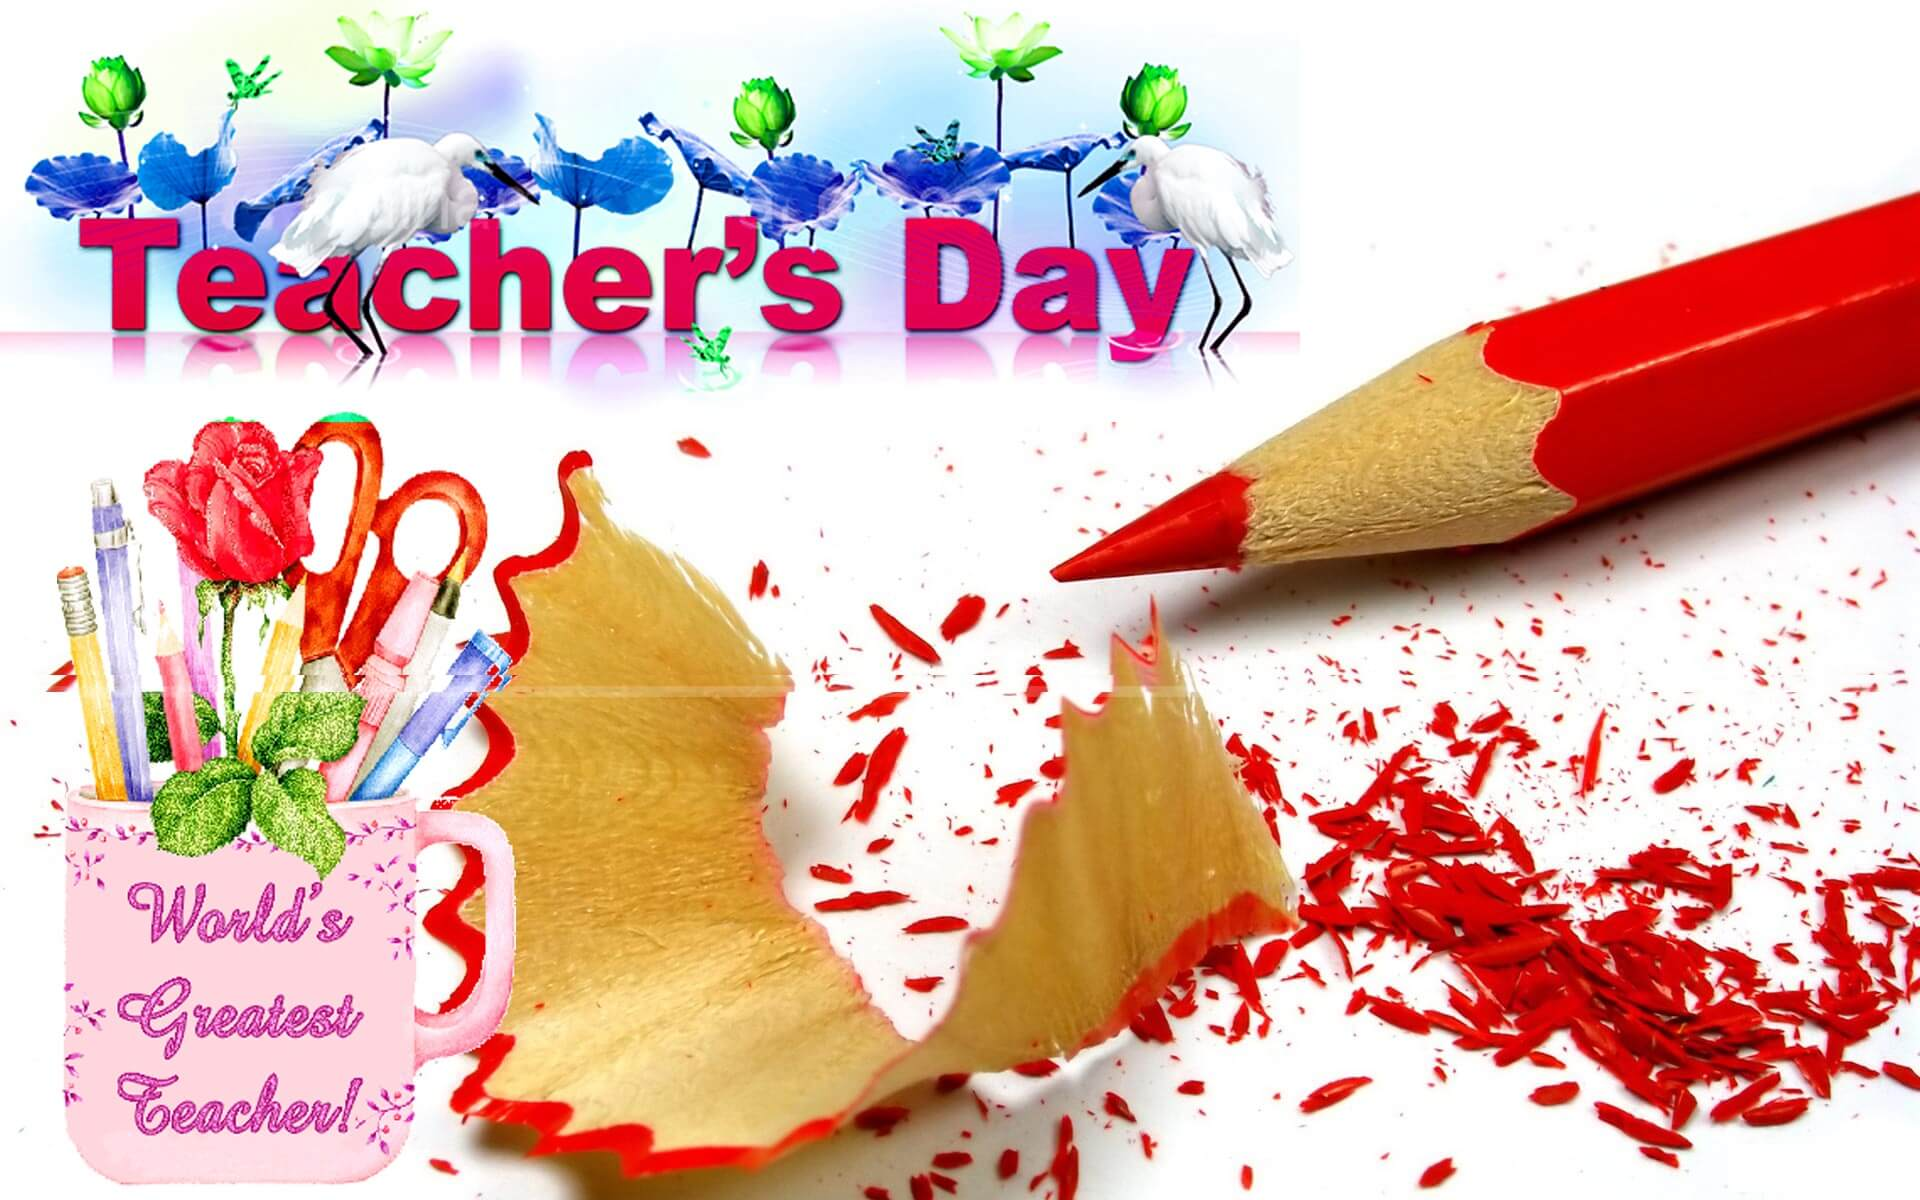 teachers day wishes latest hd image wallpaper